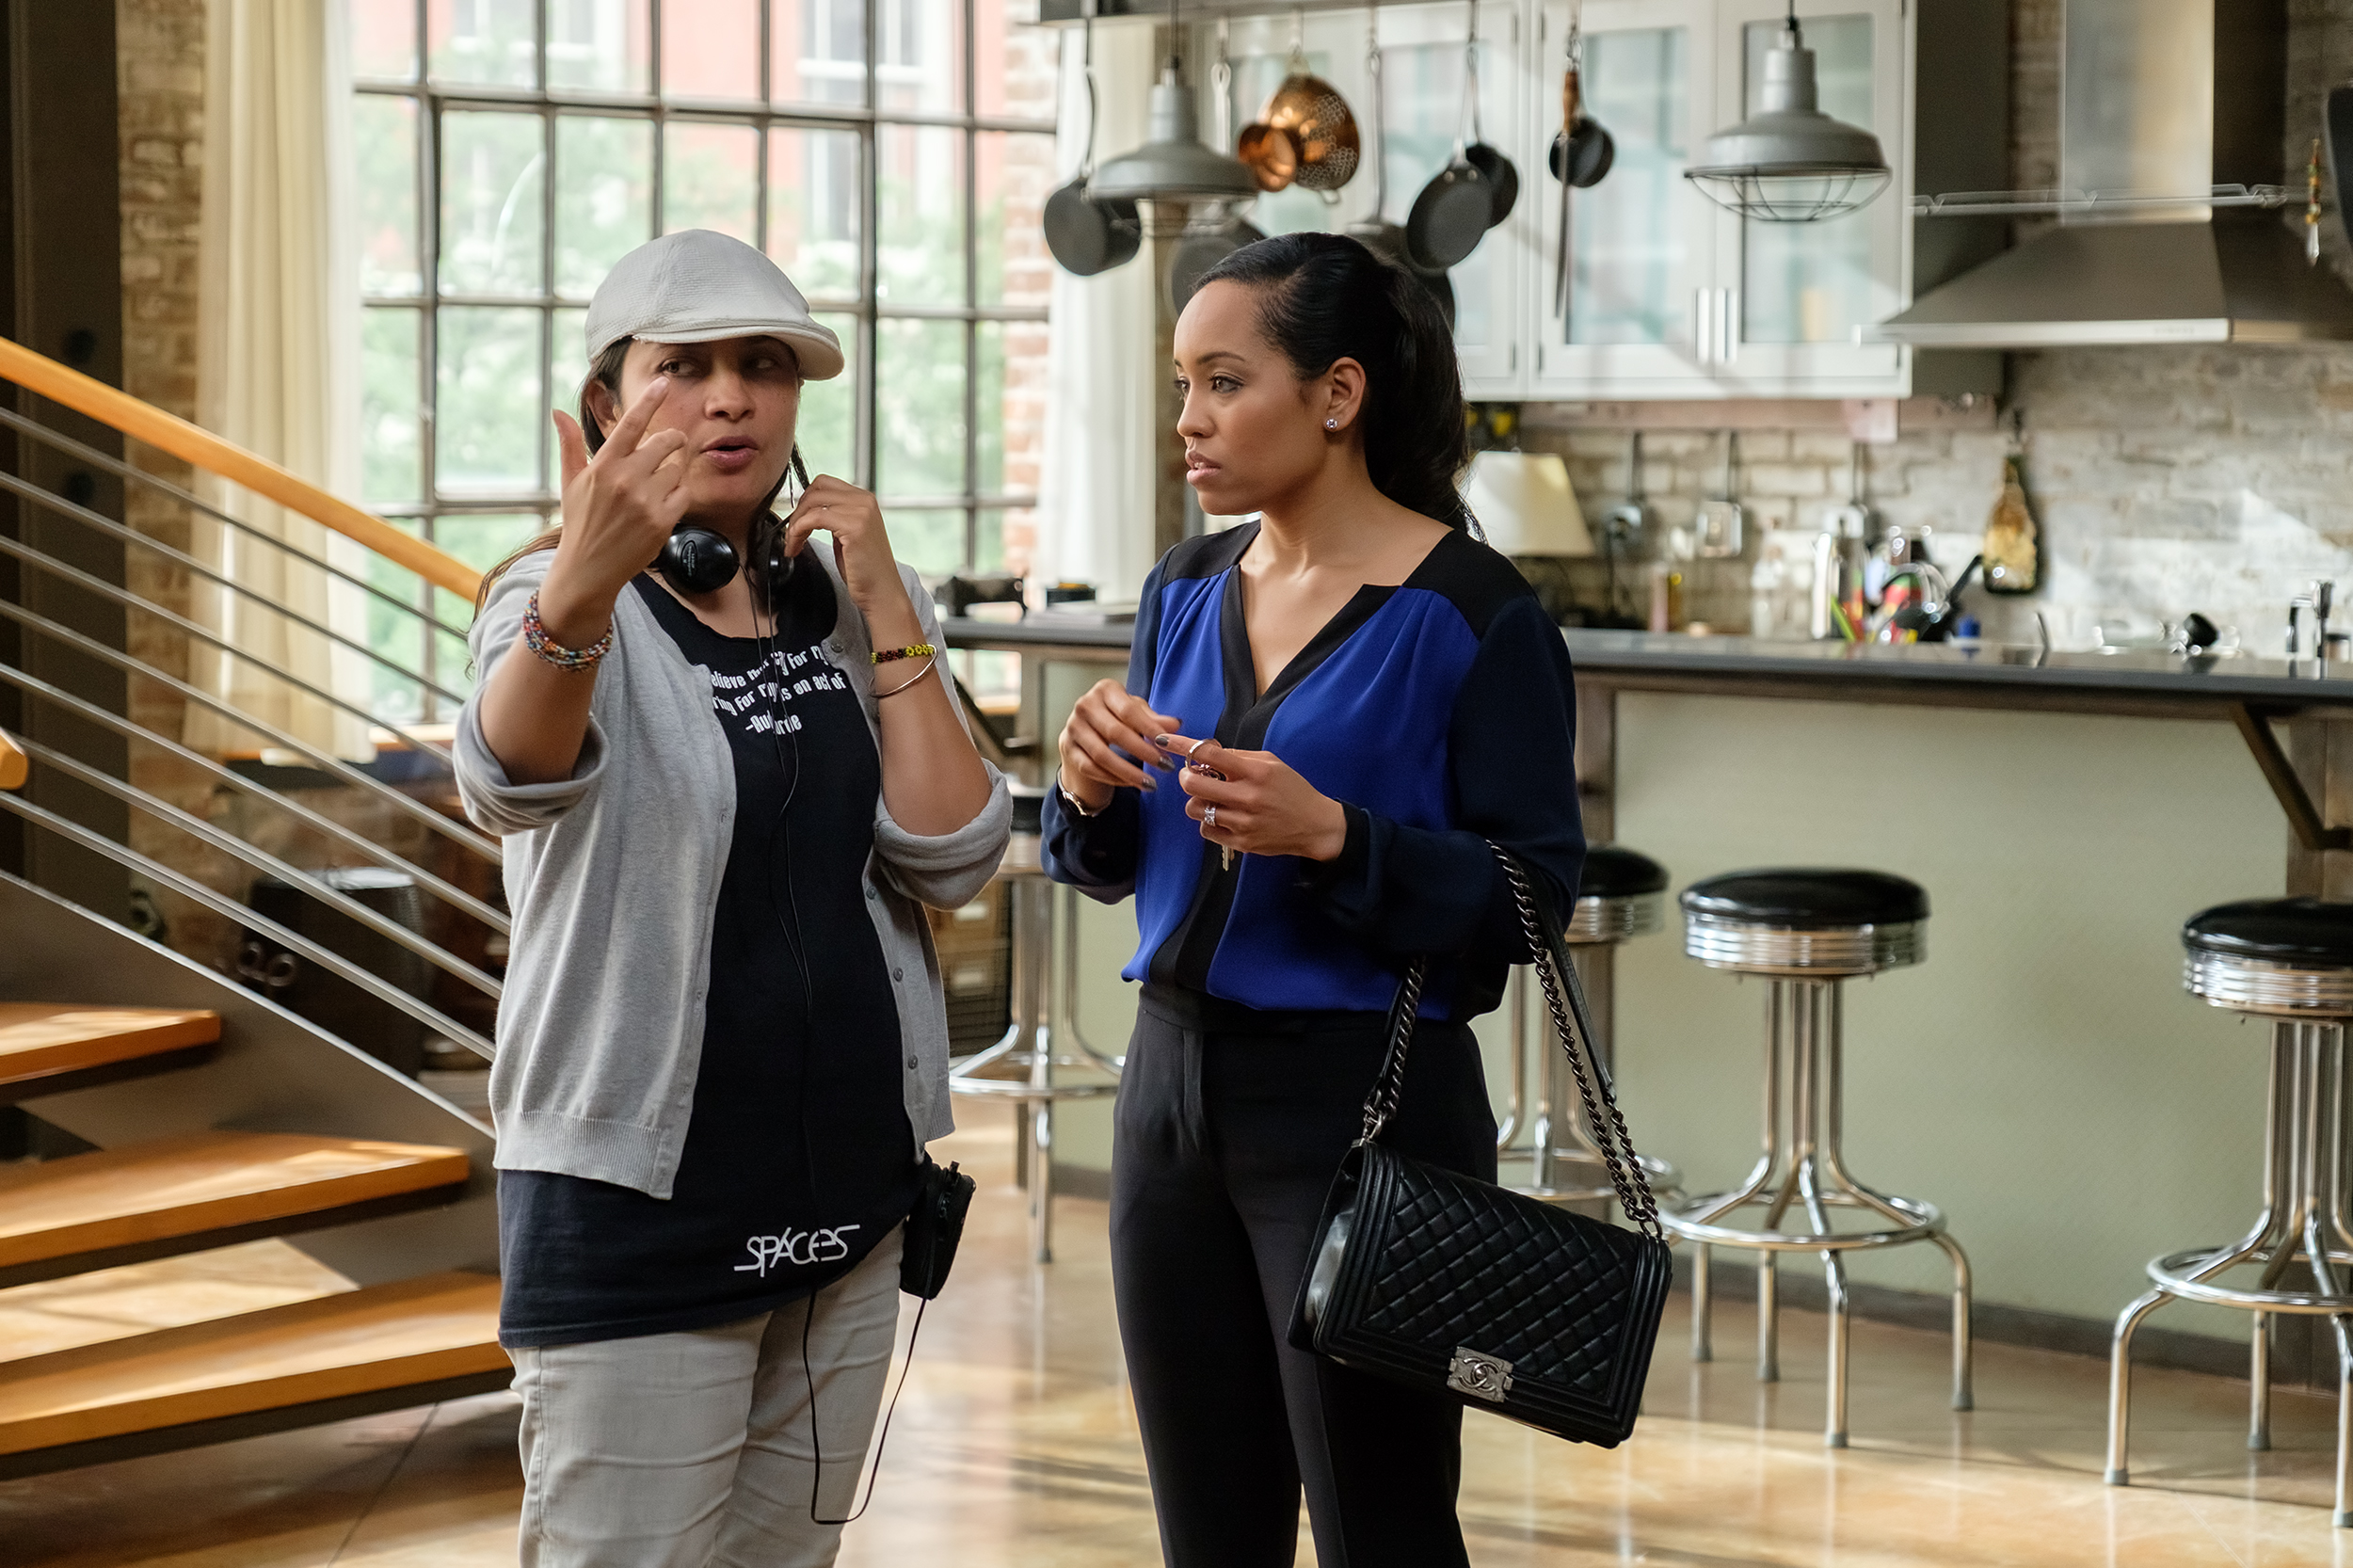 Aurora Guerrero, left, directing Dawn-Lyen Gardner. Photo by Alfonso Bresciani ©2017 Warner Bros. Entertainment Inc.